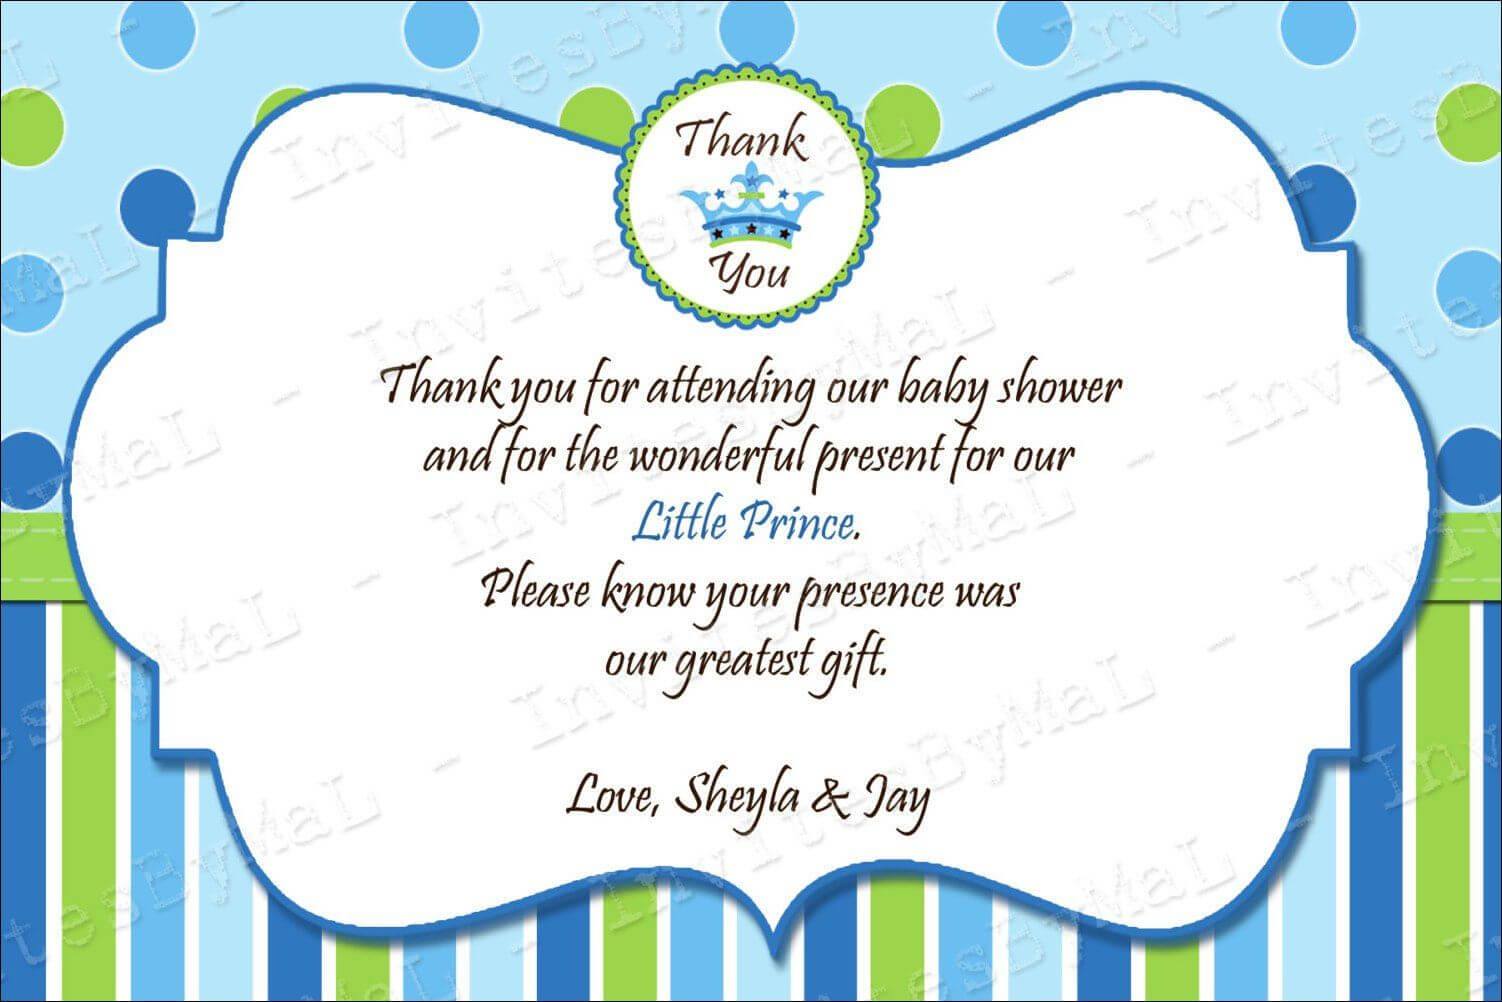 40 Beautiful Baby Shower Thank You Cards Ideas | Baby Shower Inside Template For Baby Shower Thank You Cards